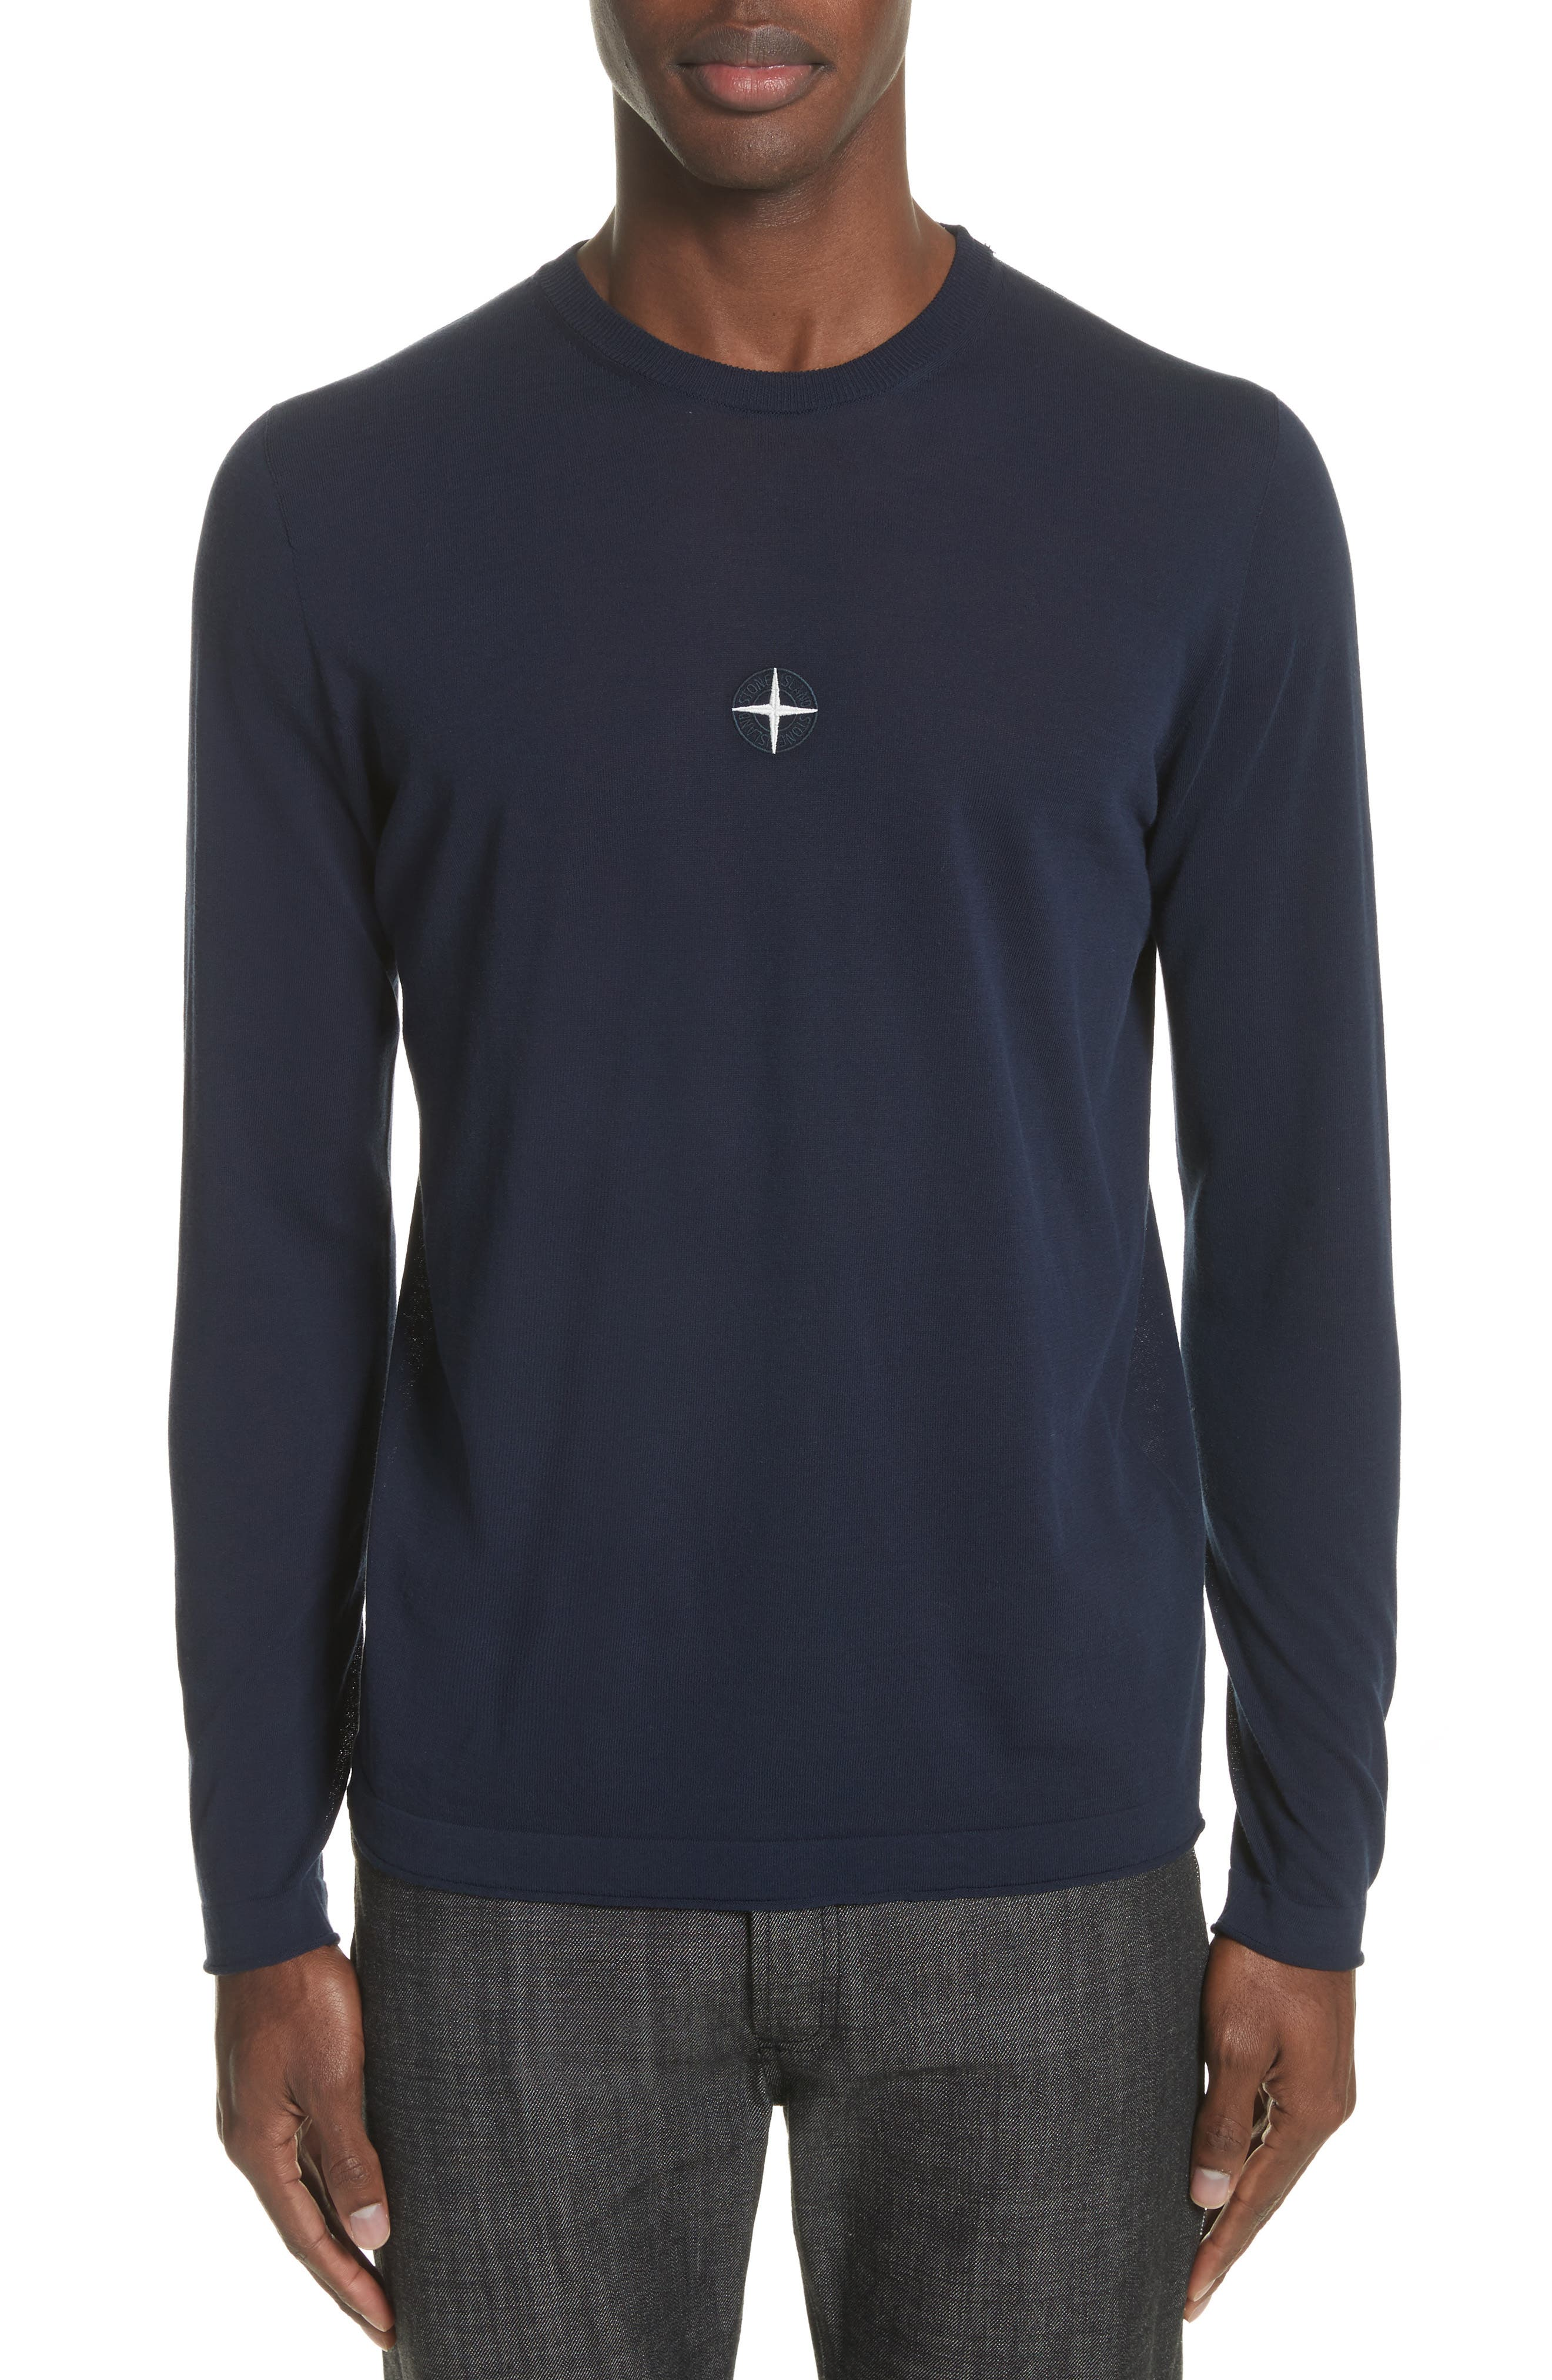 Embroidered Crest Sweater,                             Main thumbnail 1, color,                             Blue